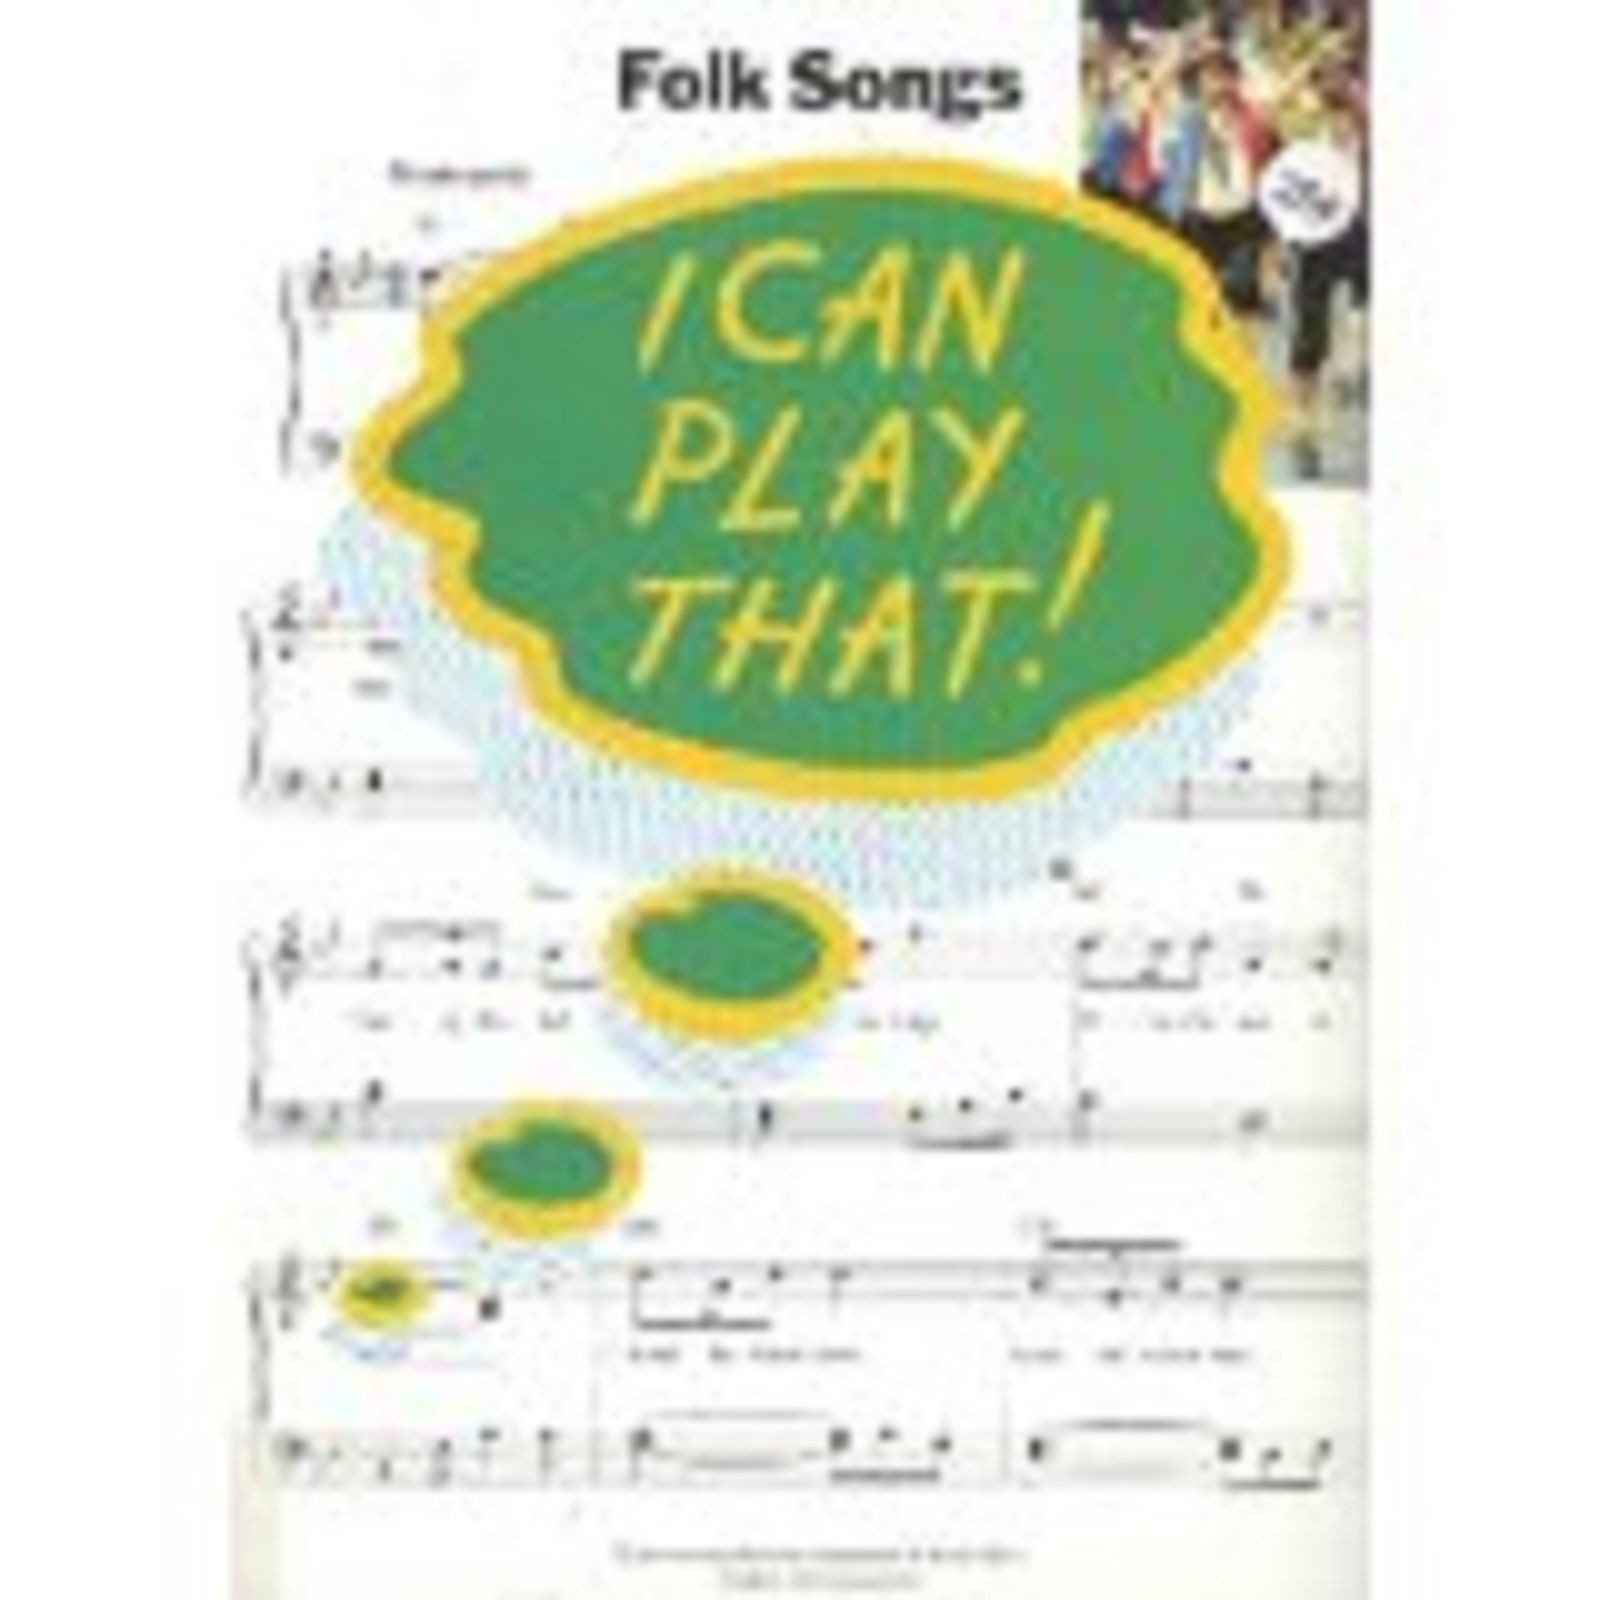 I Can Play That! Folk Songs Easy Piano Sheet Music Beginner Pieces Grade 1-4 S24